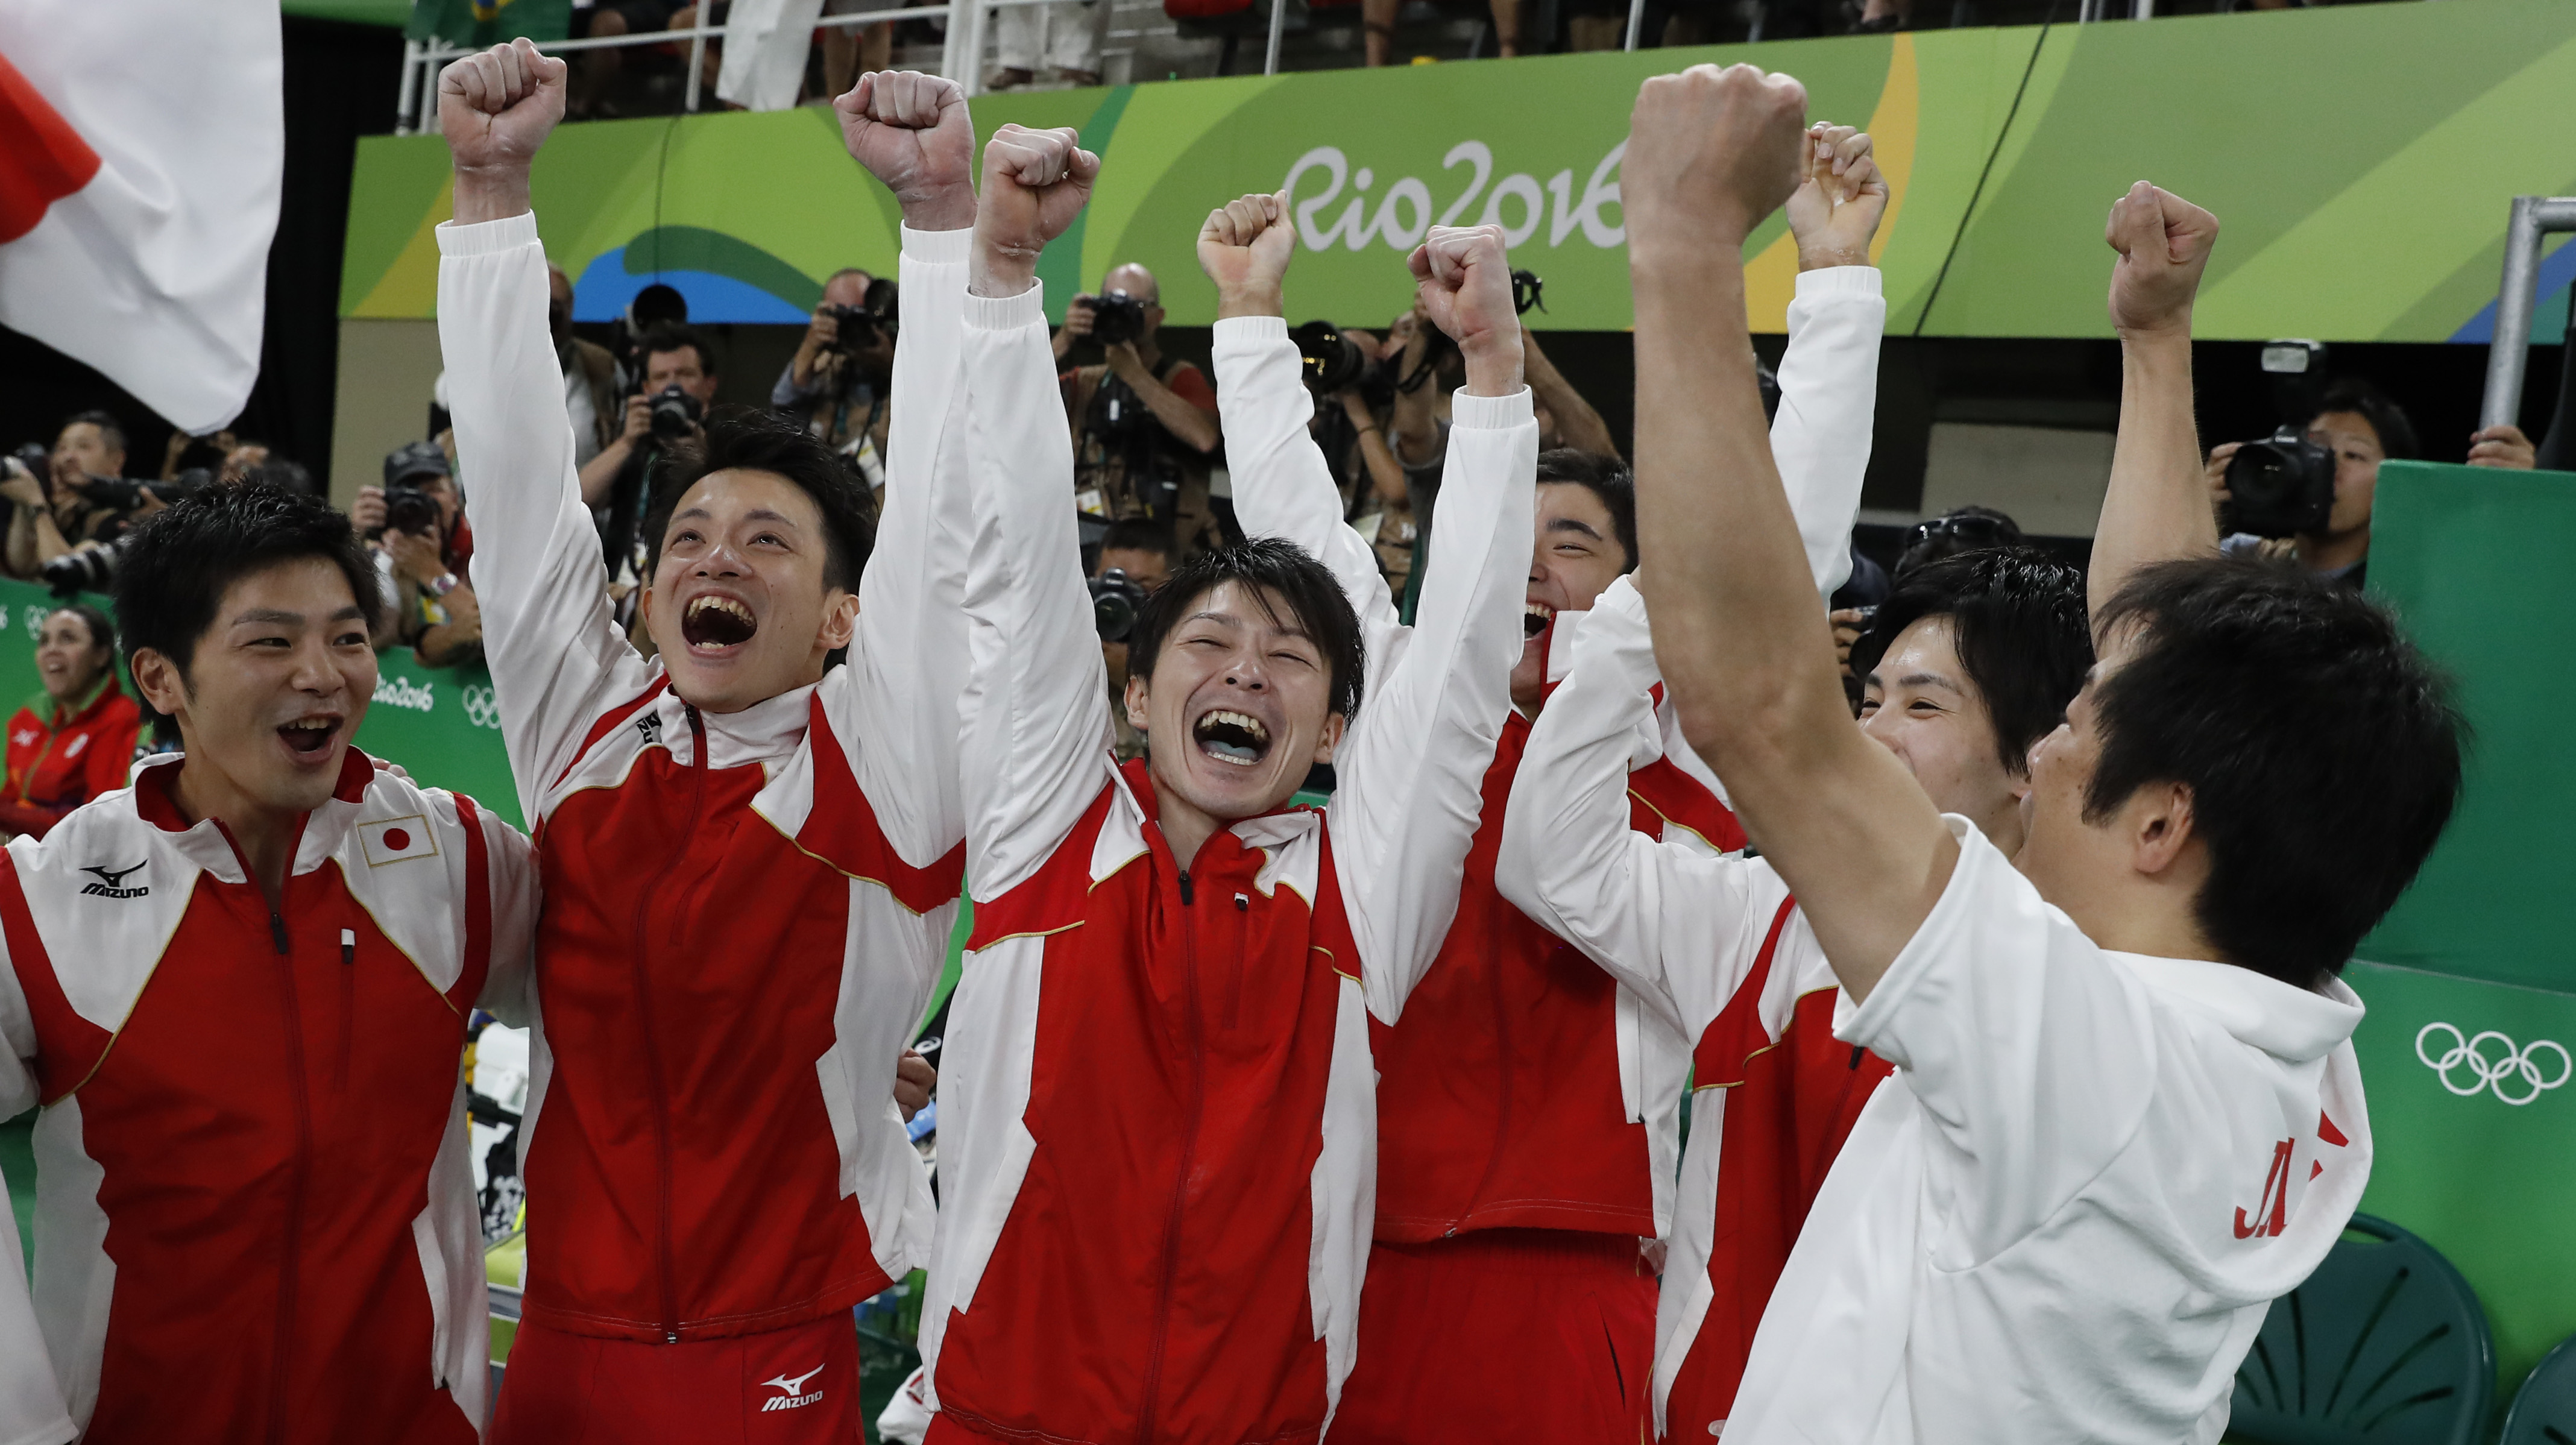 Japanese team celebrate after winning the men's team final of the Artistic Gymnastics at the Olympic Arena during the Rio 2016 Olympic Games in Rio de Janeiro on August 8, 2016. / AFP PHOTO / Thomas COEX